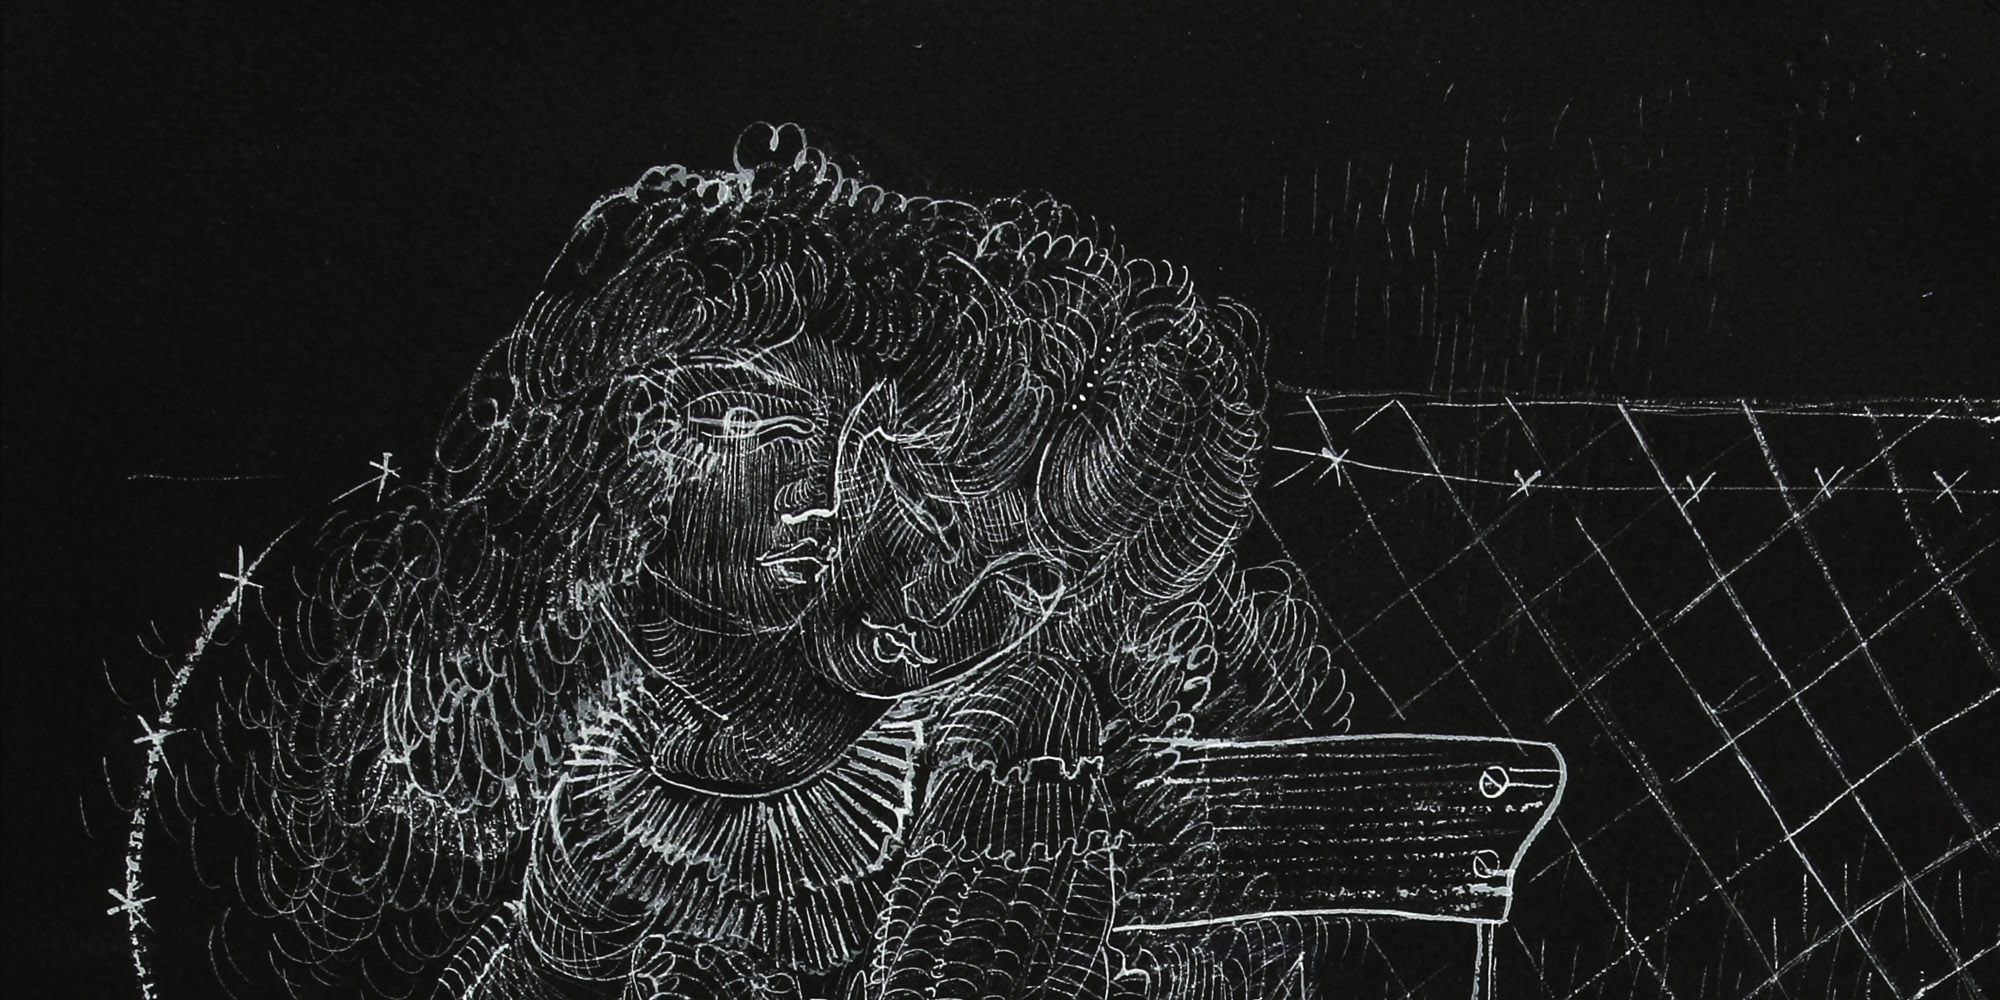 A drawing on a black background, created with a white pencil. The heads of two women are showing from the necks up, appearing as if one woman is resting her head on the other's shoulder.